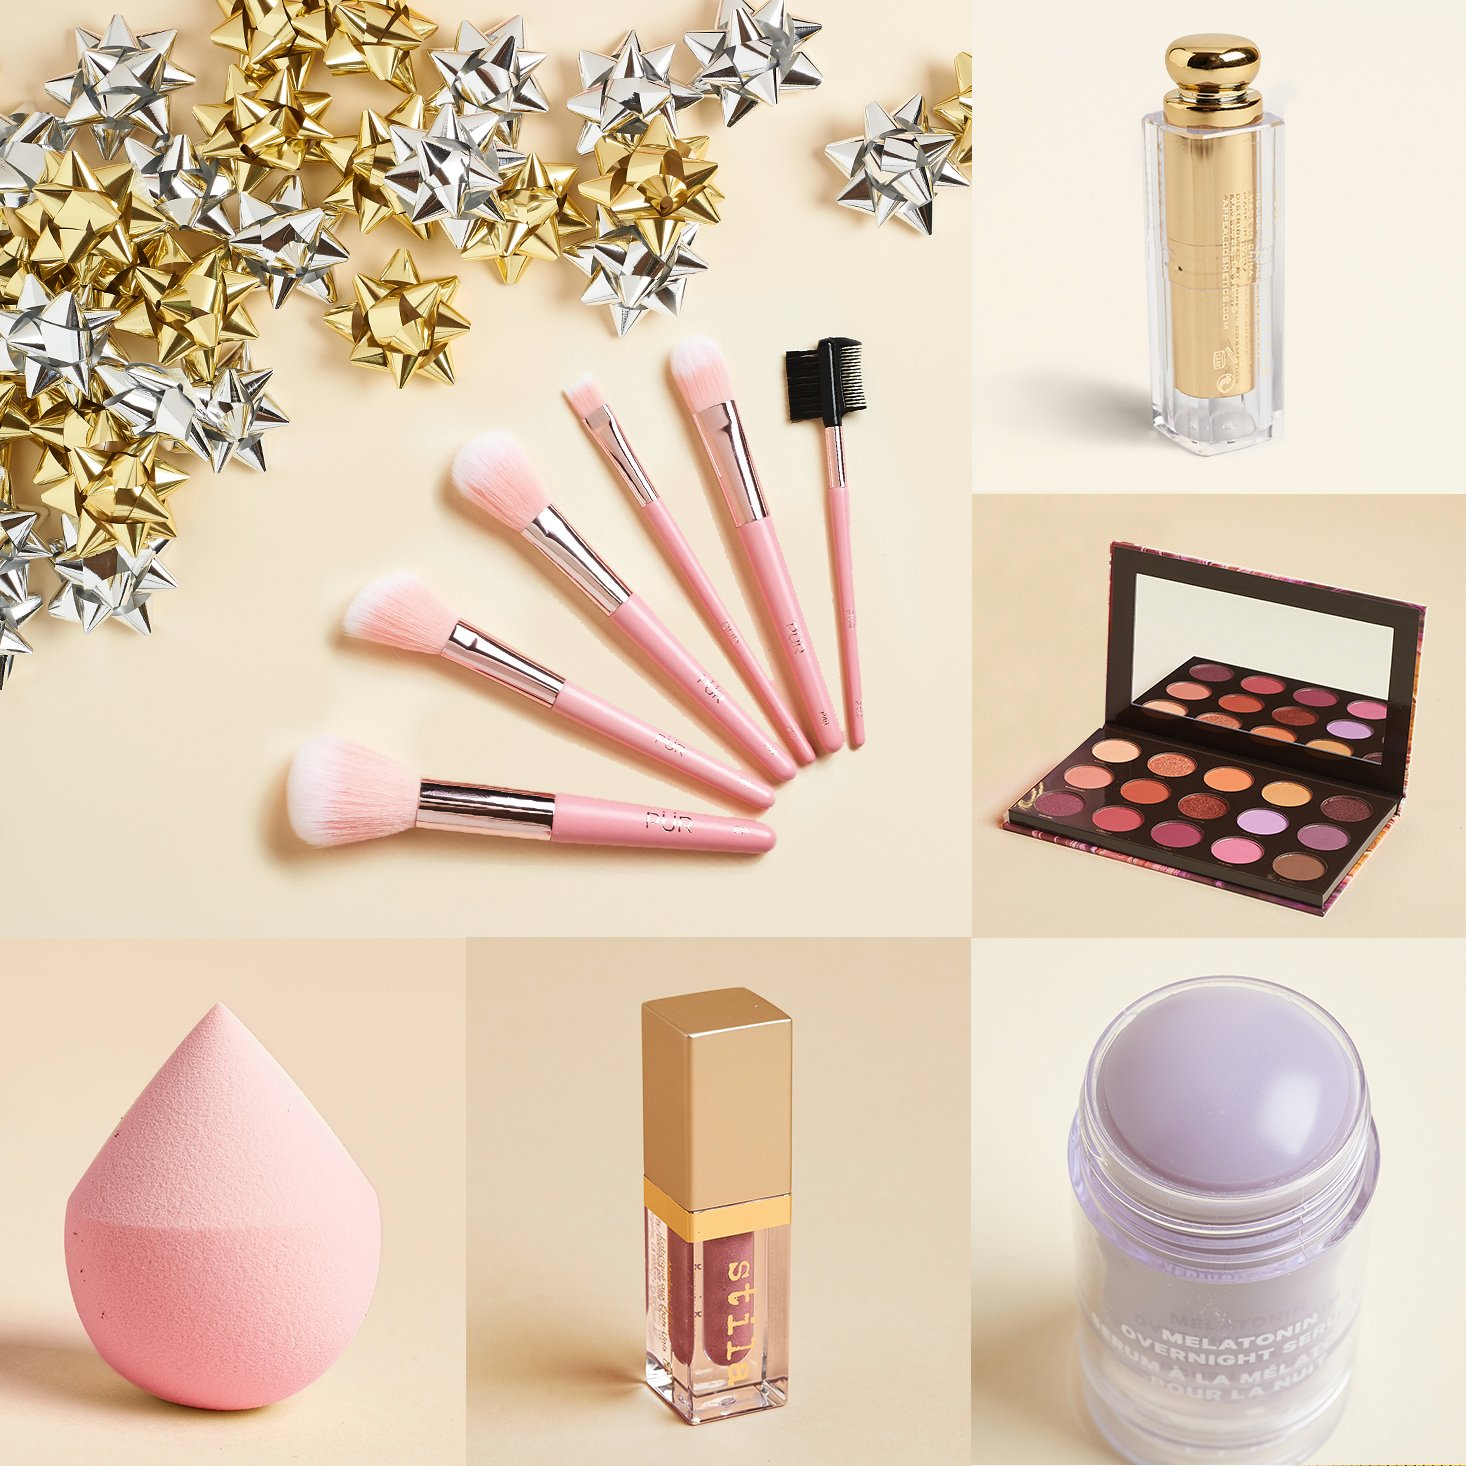 Beauty Subscription Gifts